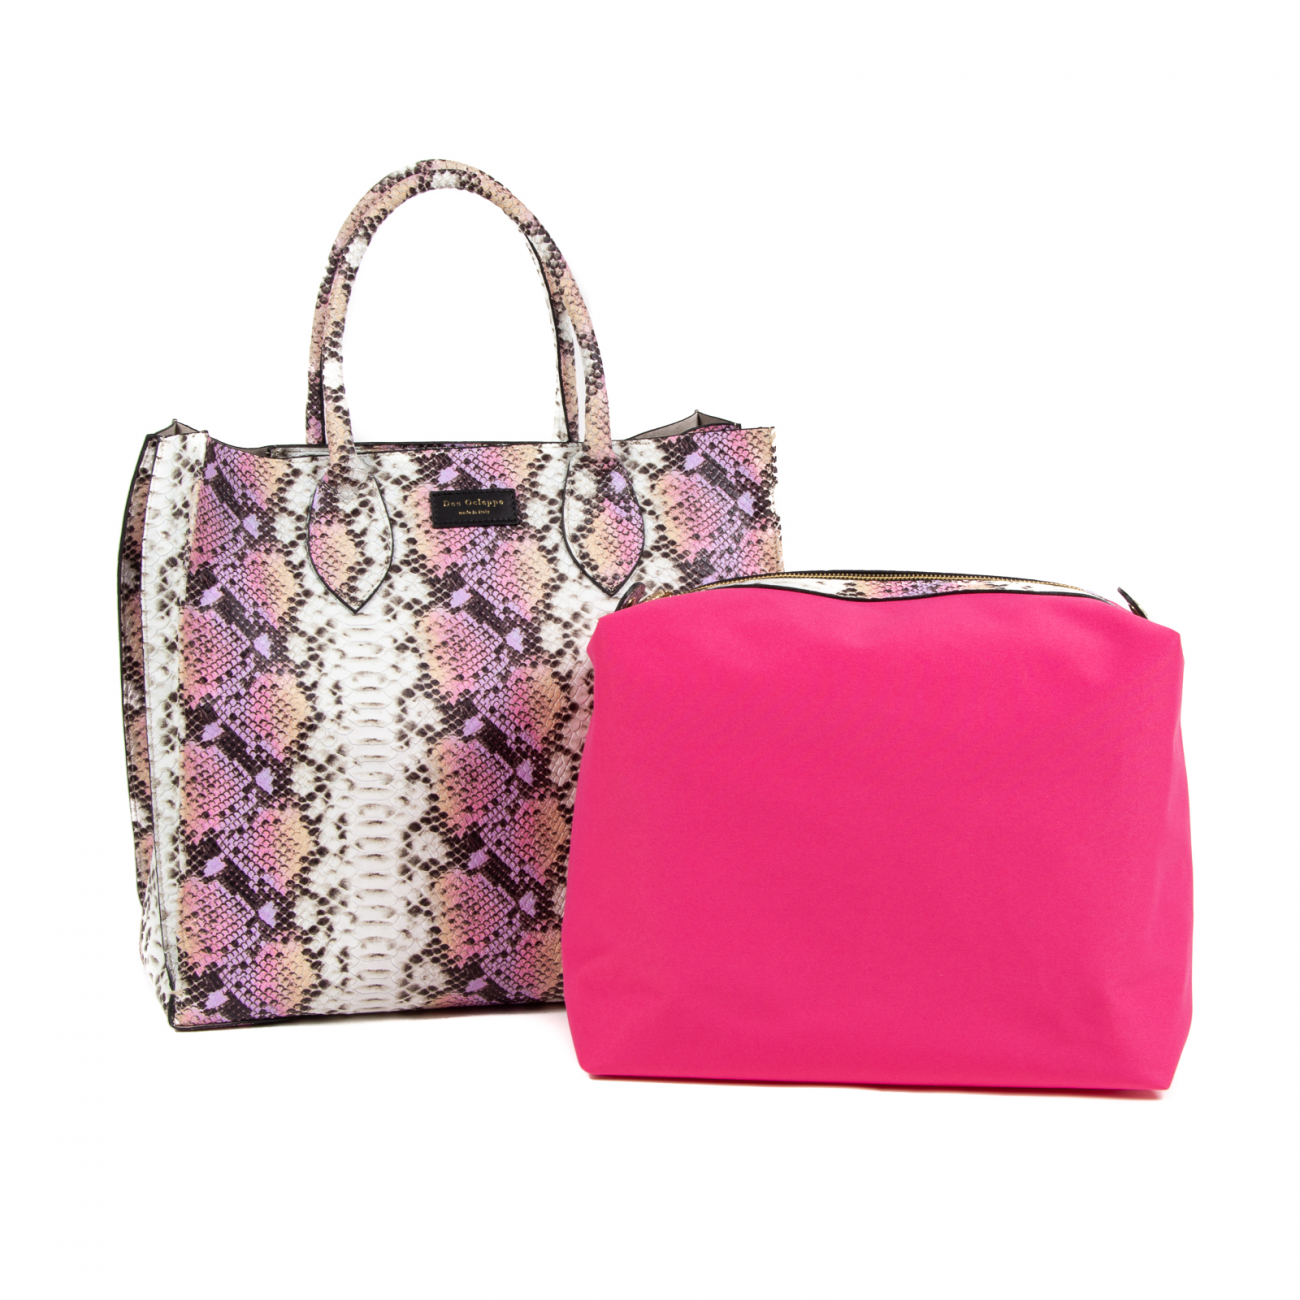 Dee Ocleppo Womens Holdall Tote DC207 PITONE ROSA